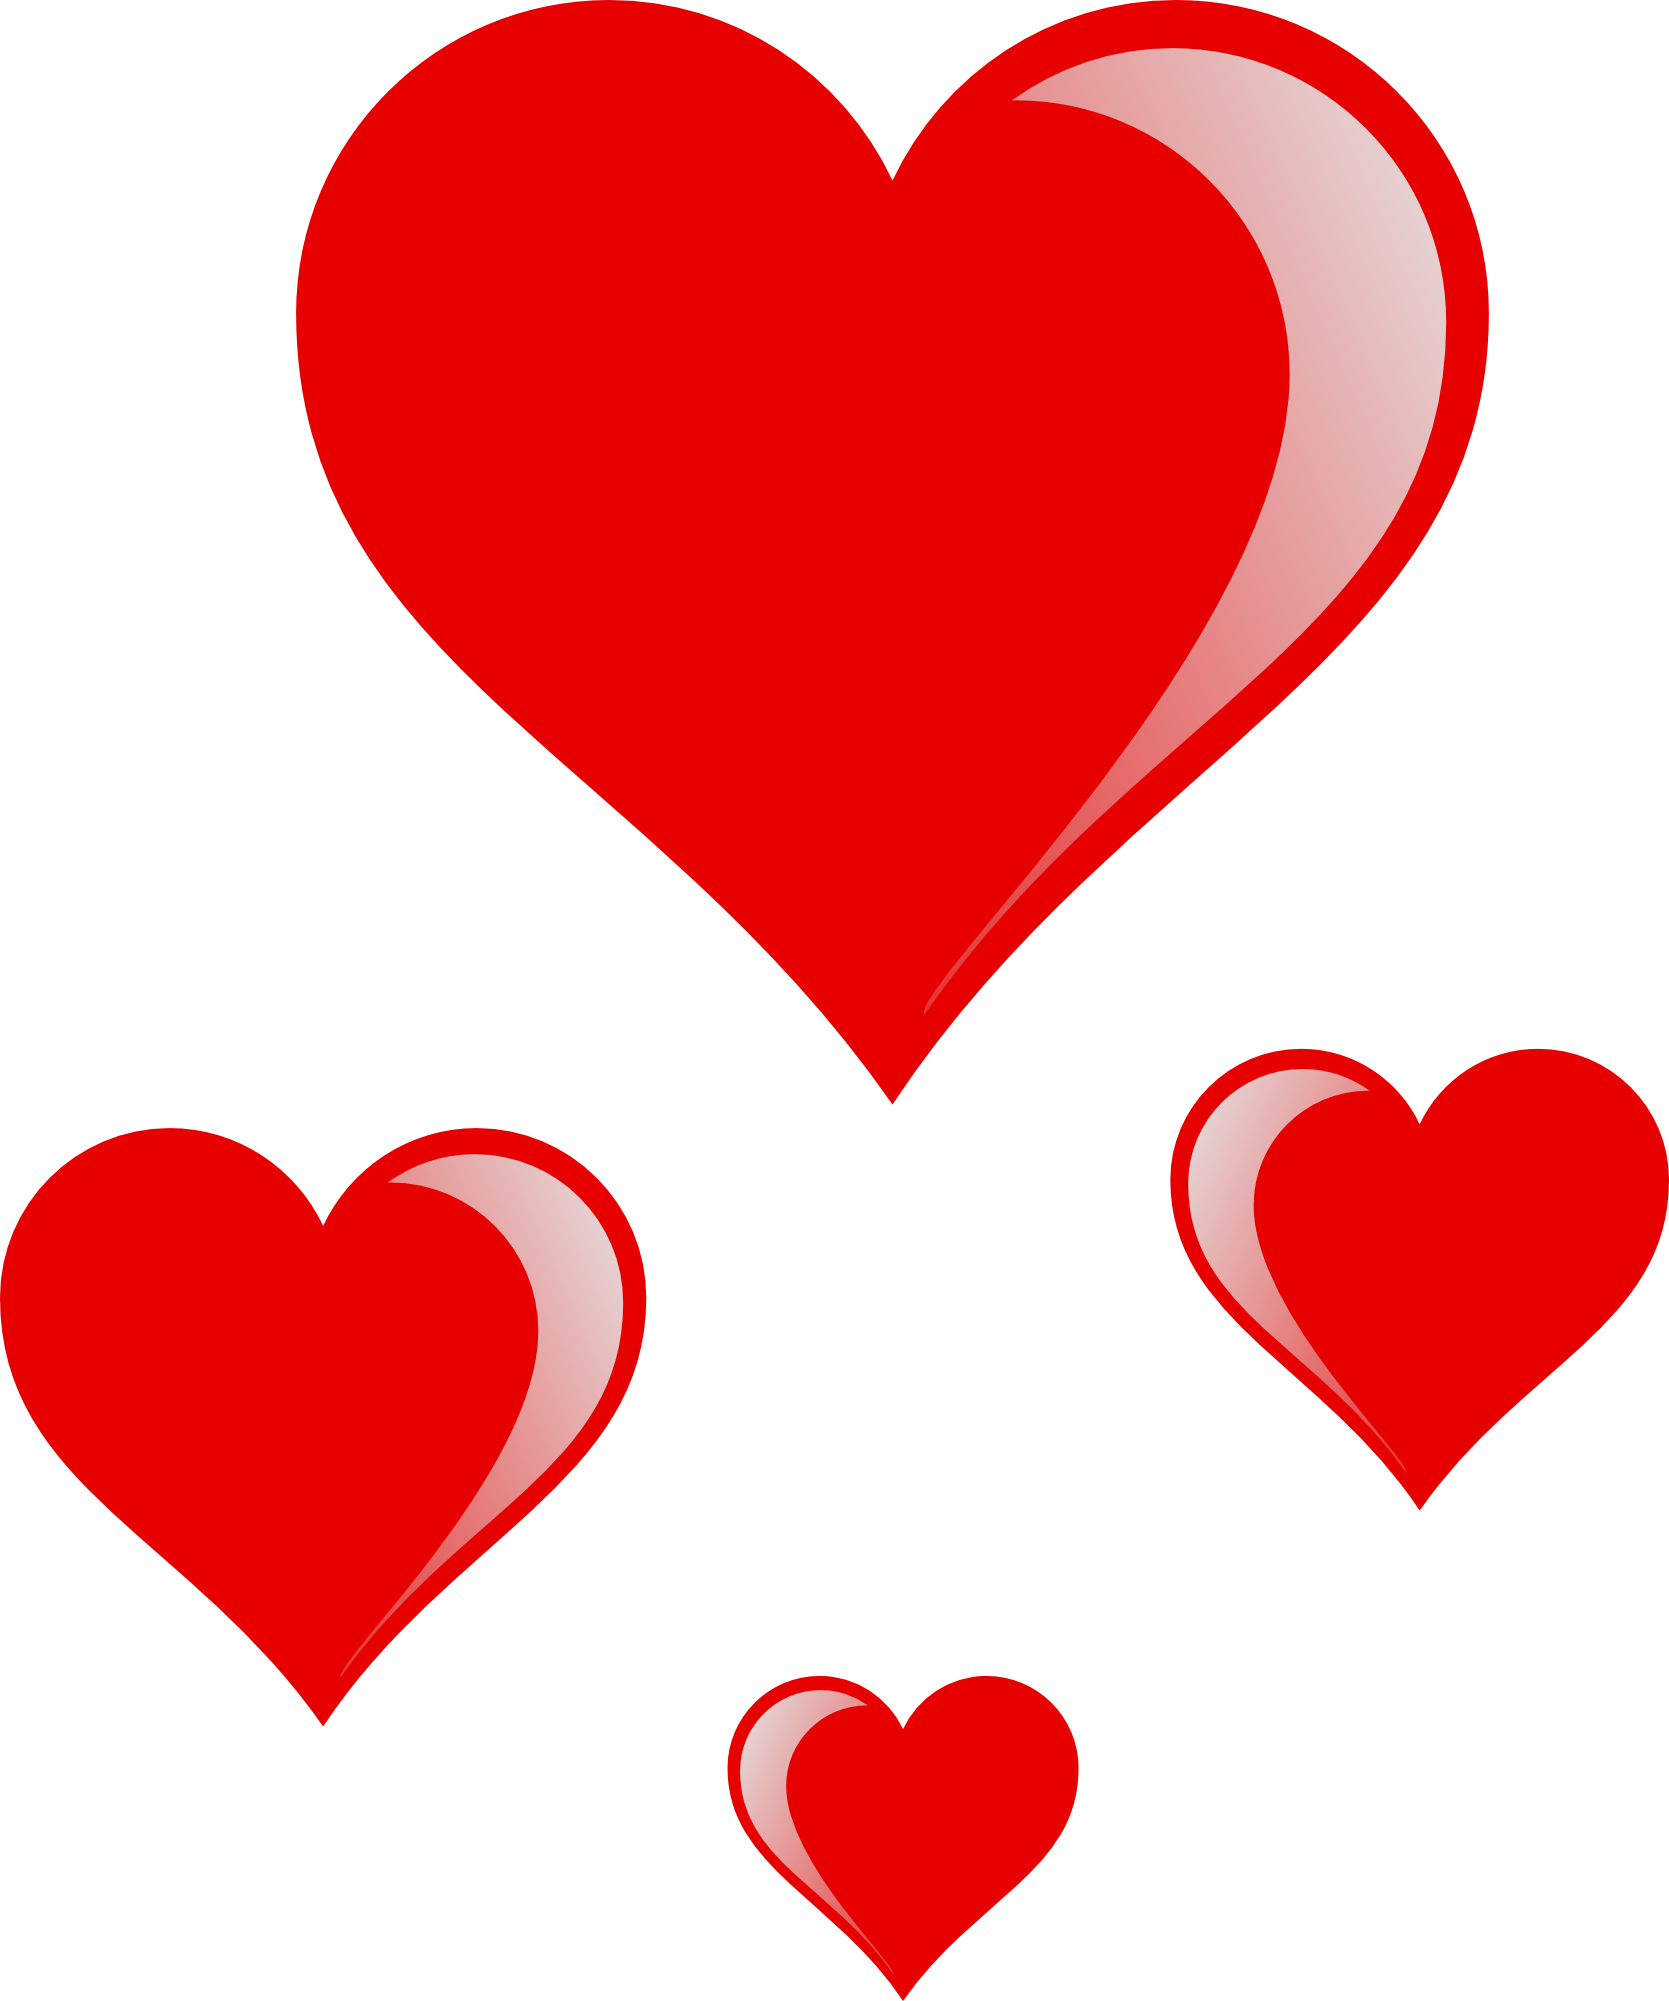 Best Hearts Valentine's Clipart #24619 - Clipartion.com